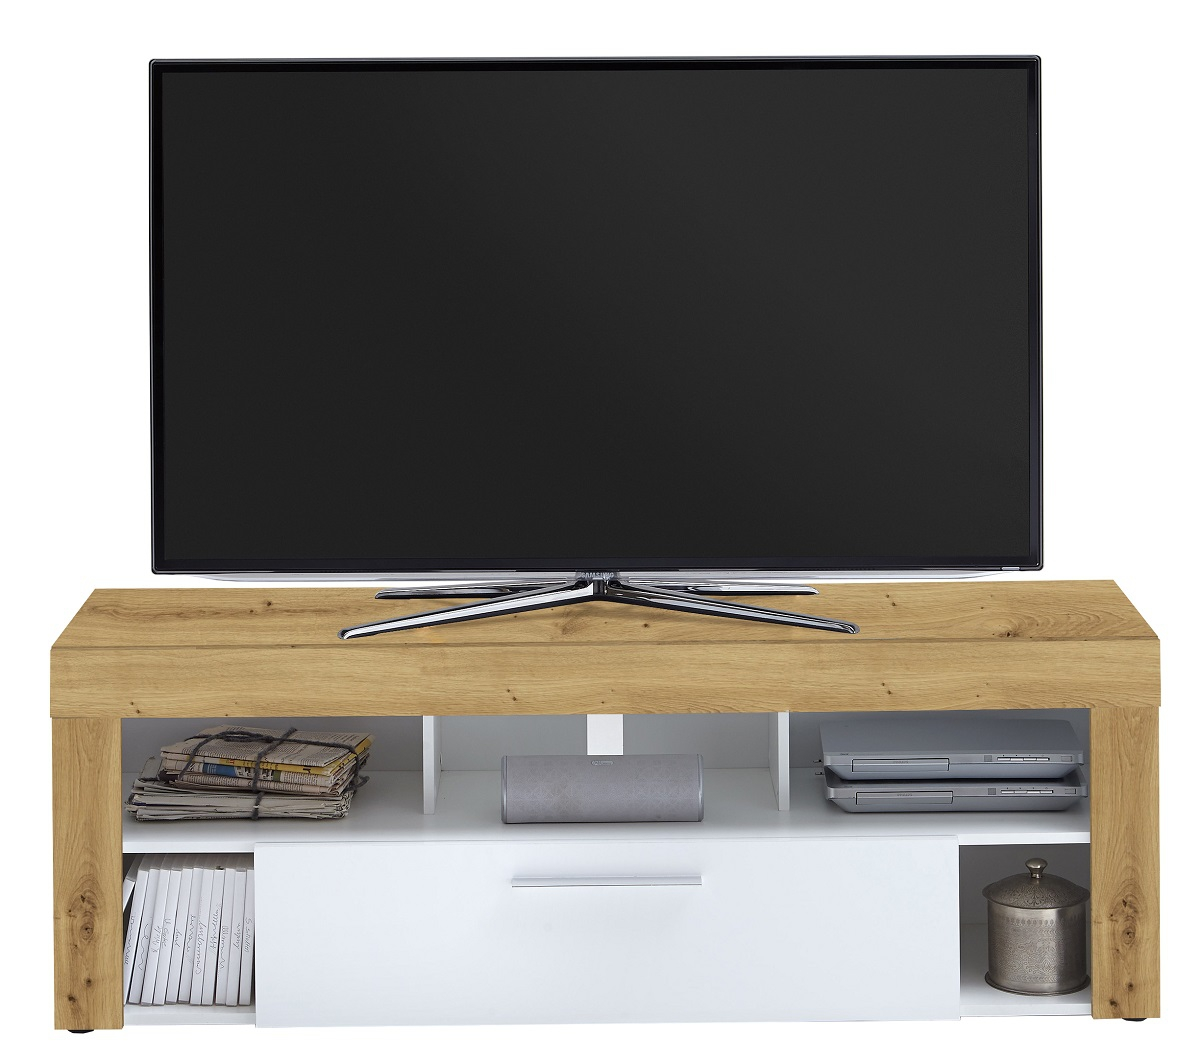 Tv-meubel Raymond 150 cm breed in artisan eiken met wit